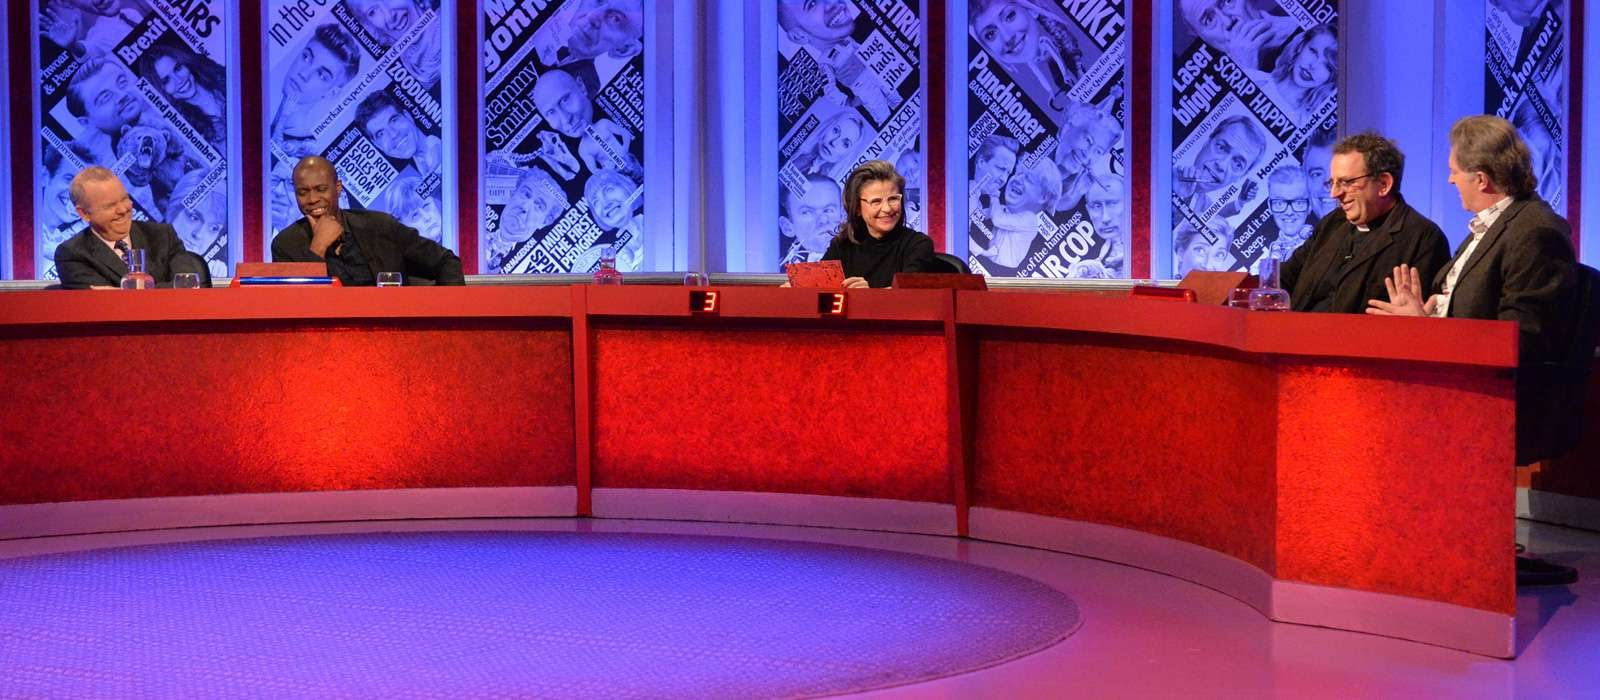 Richard Coles on Have I Got News For You